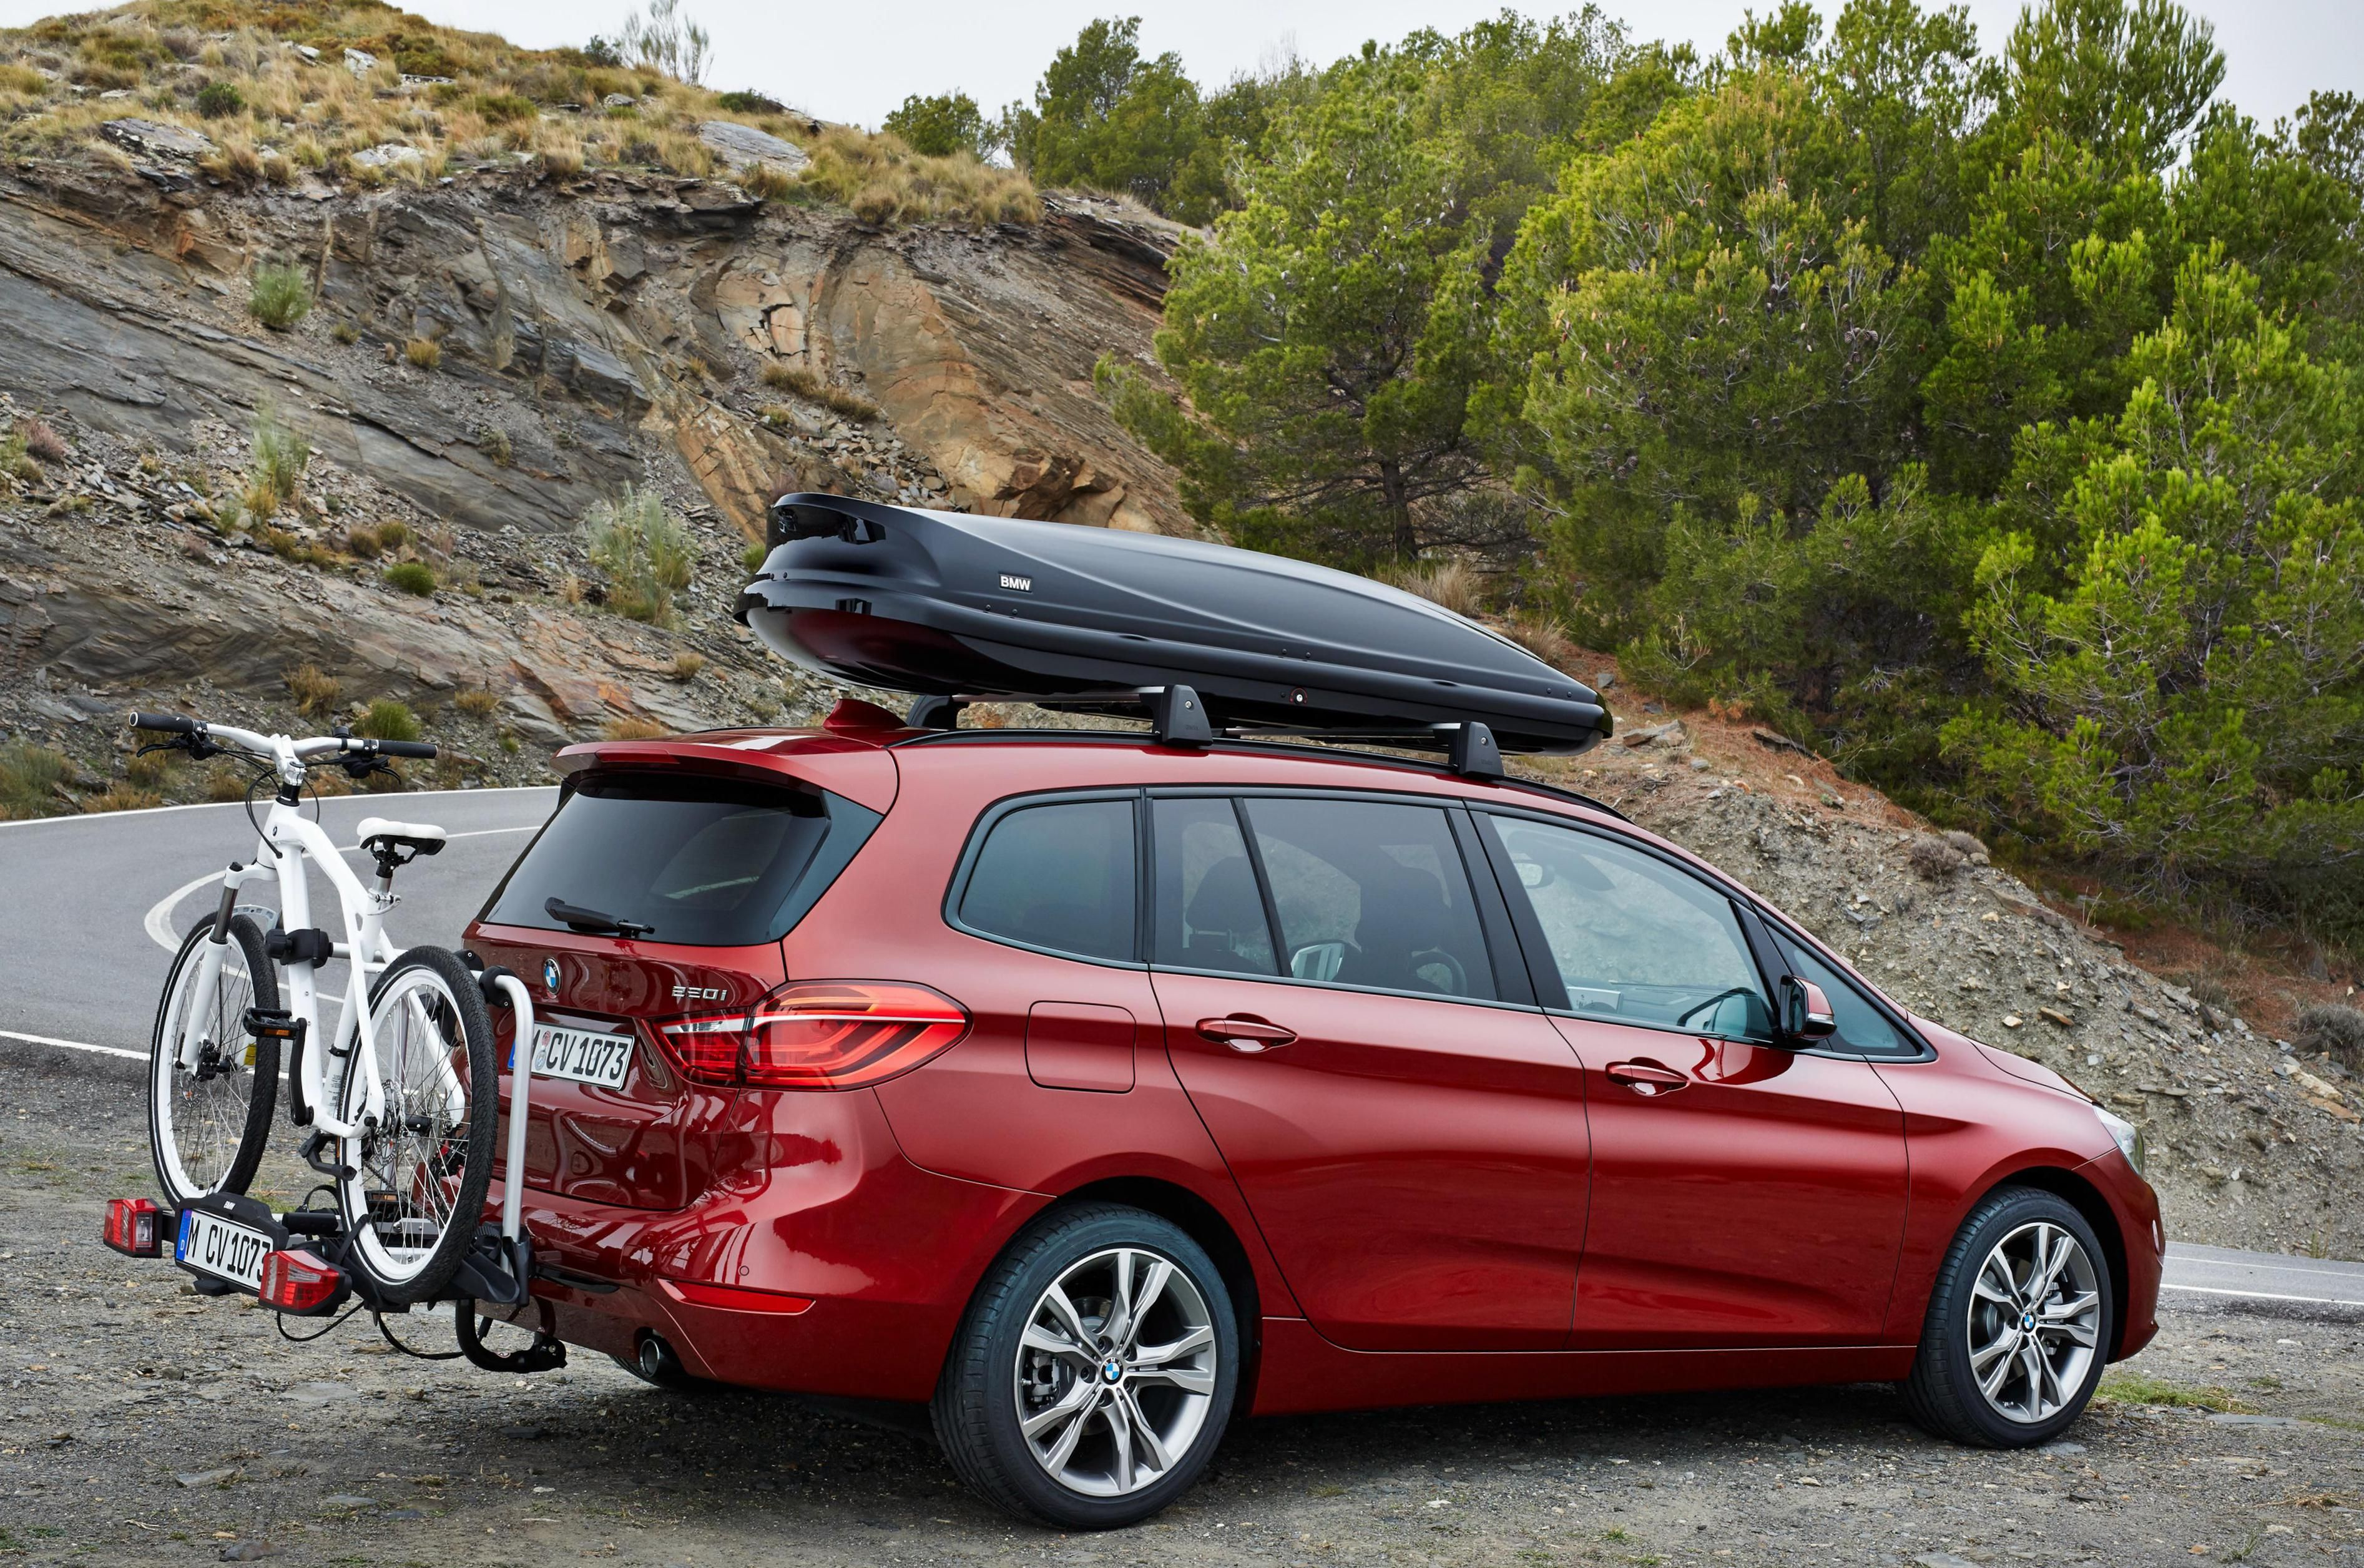 Bmw 2 Series Gran Tourer F46 Photos And Specs Photo Bmw 2 Series Gran Tourer F46 Used And 26 Perfect Photos Of Bmw 2 Series Gran T Bmw 2 Mini Van New Bmw